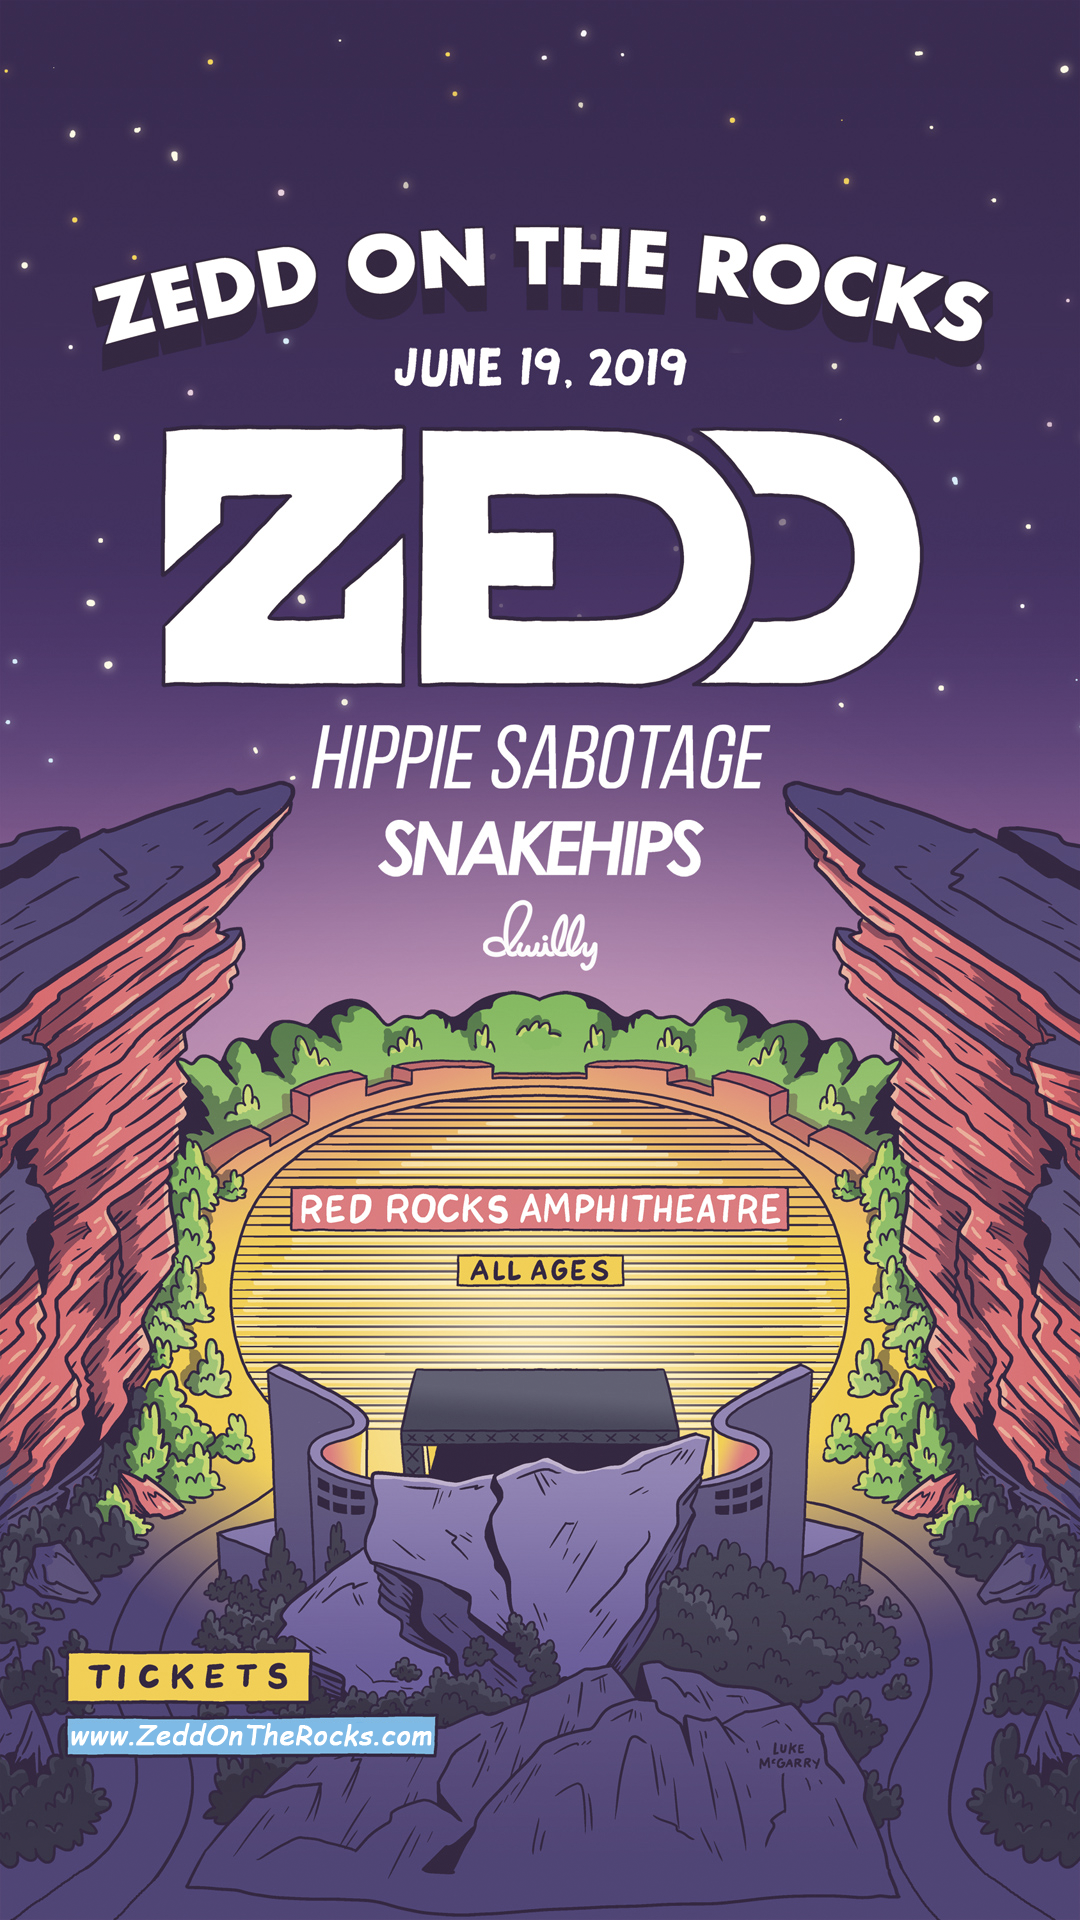 Zedd On the Rocks Schedule and lineup